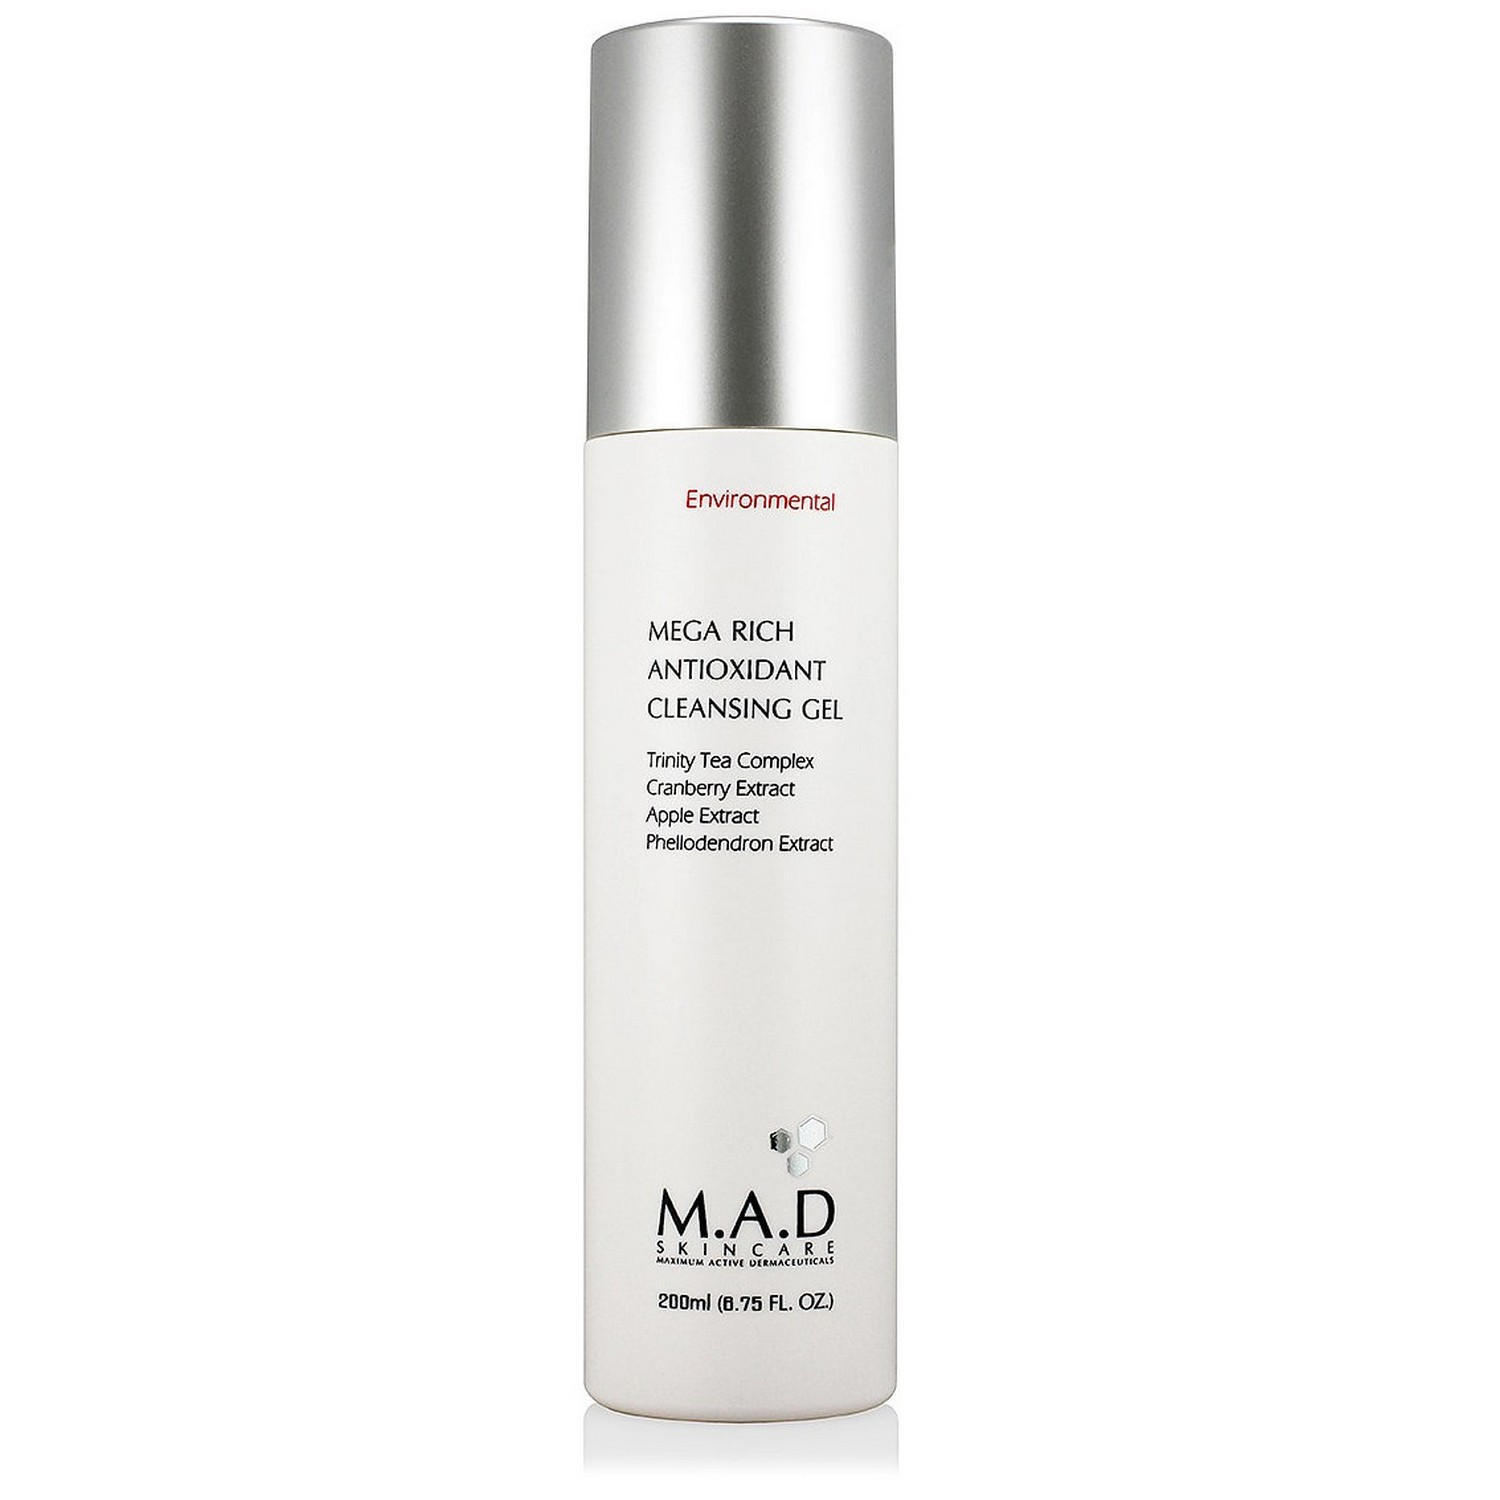 M.A.D SKINCARE MEGA RICH ANTIOXIDANT CLEANSING GEL (200 ml / 6.75 fl oz)